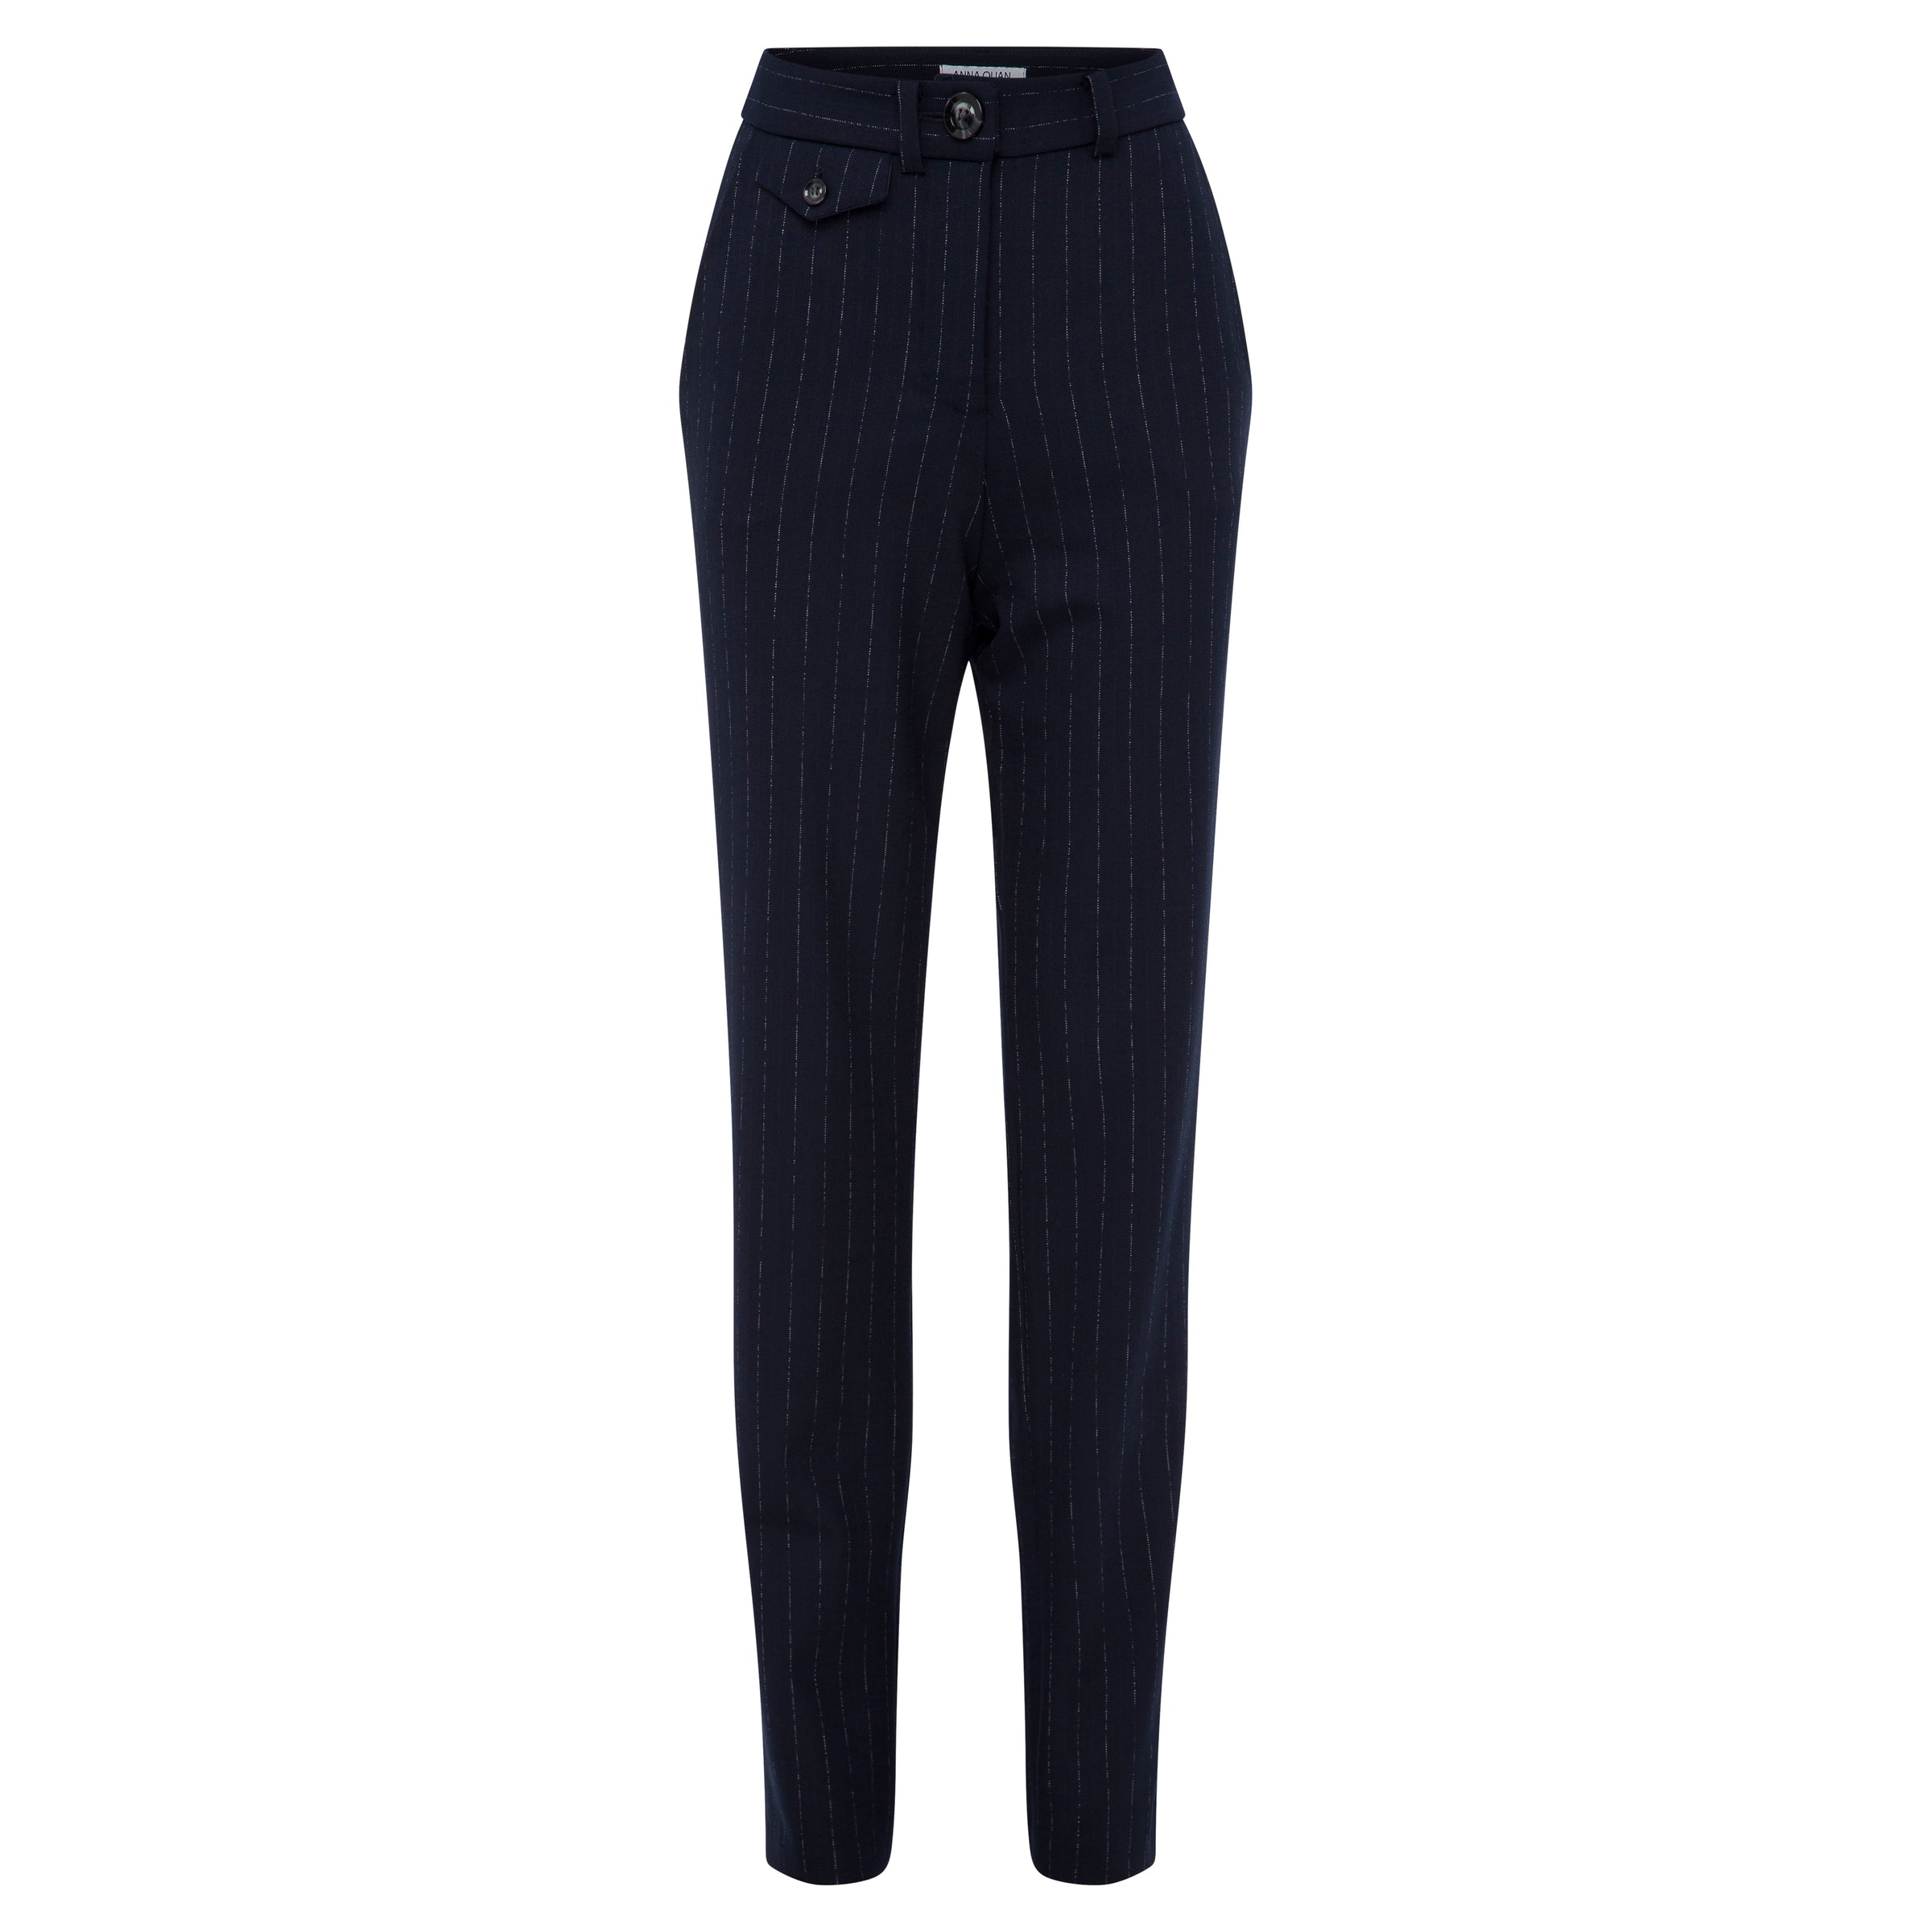 ROXY Pants (CHALK STRIPE)